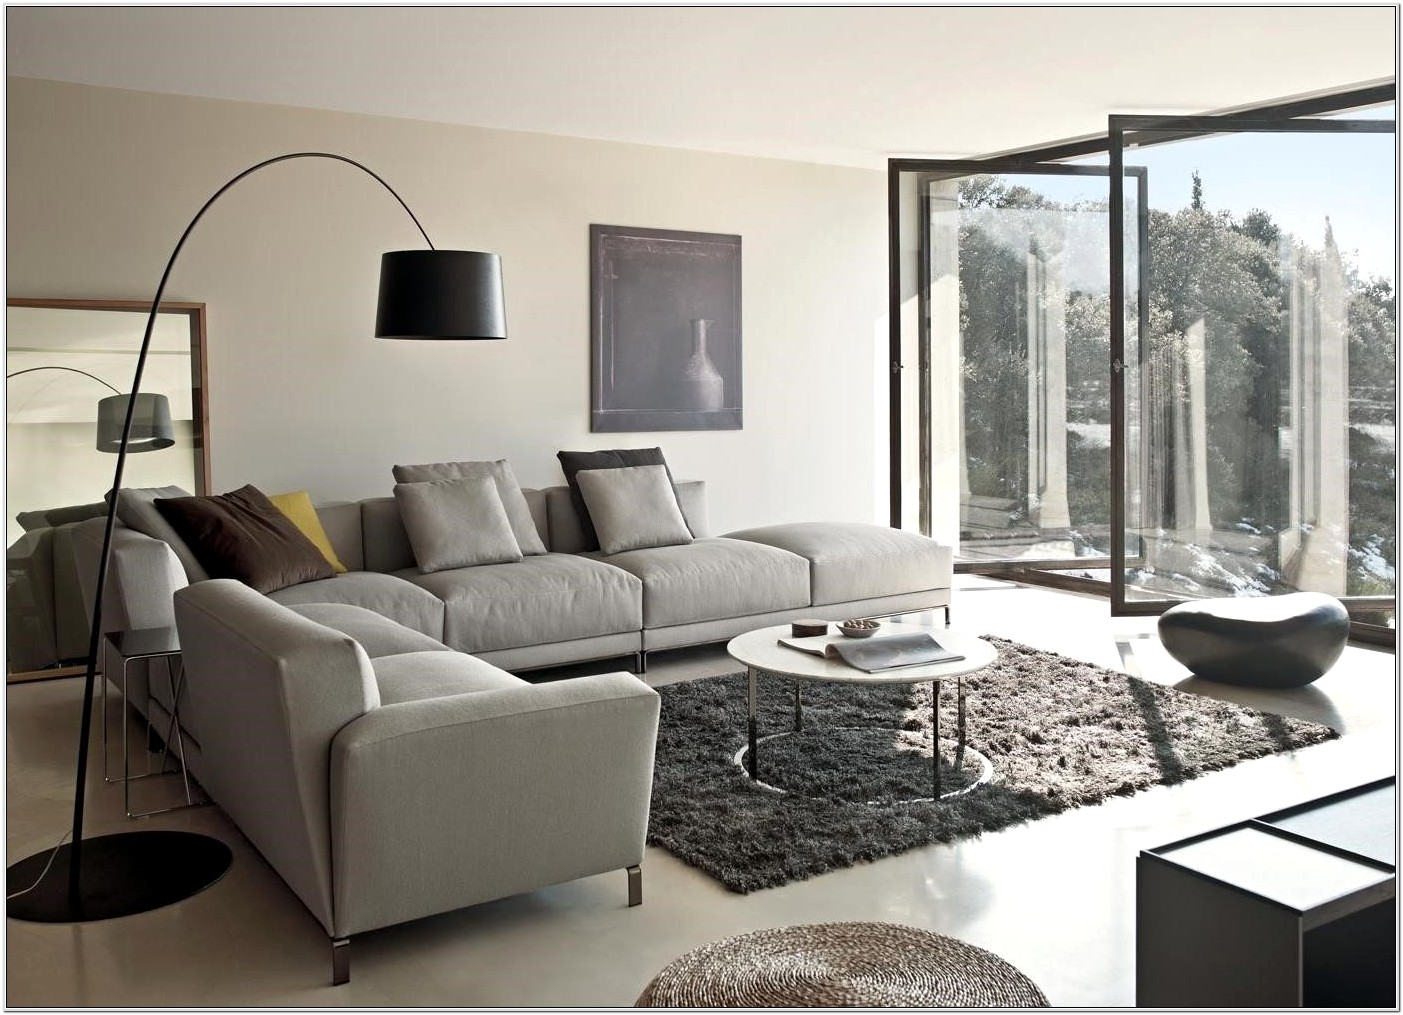 Sectional Sofa In Living Room Ideas